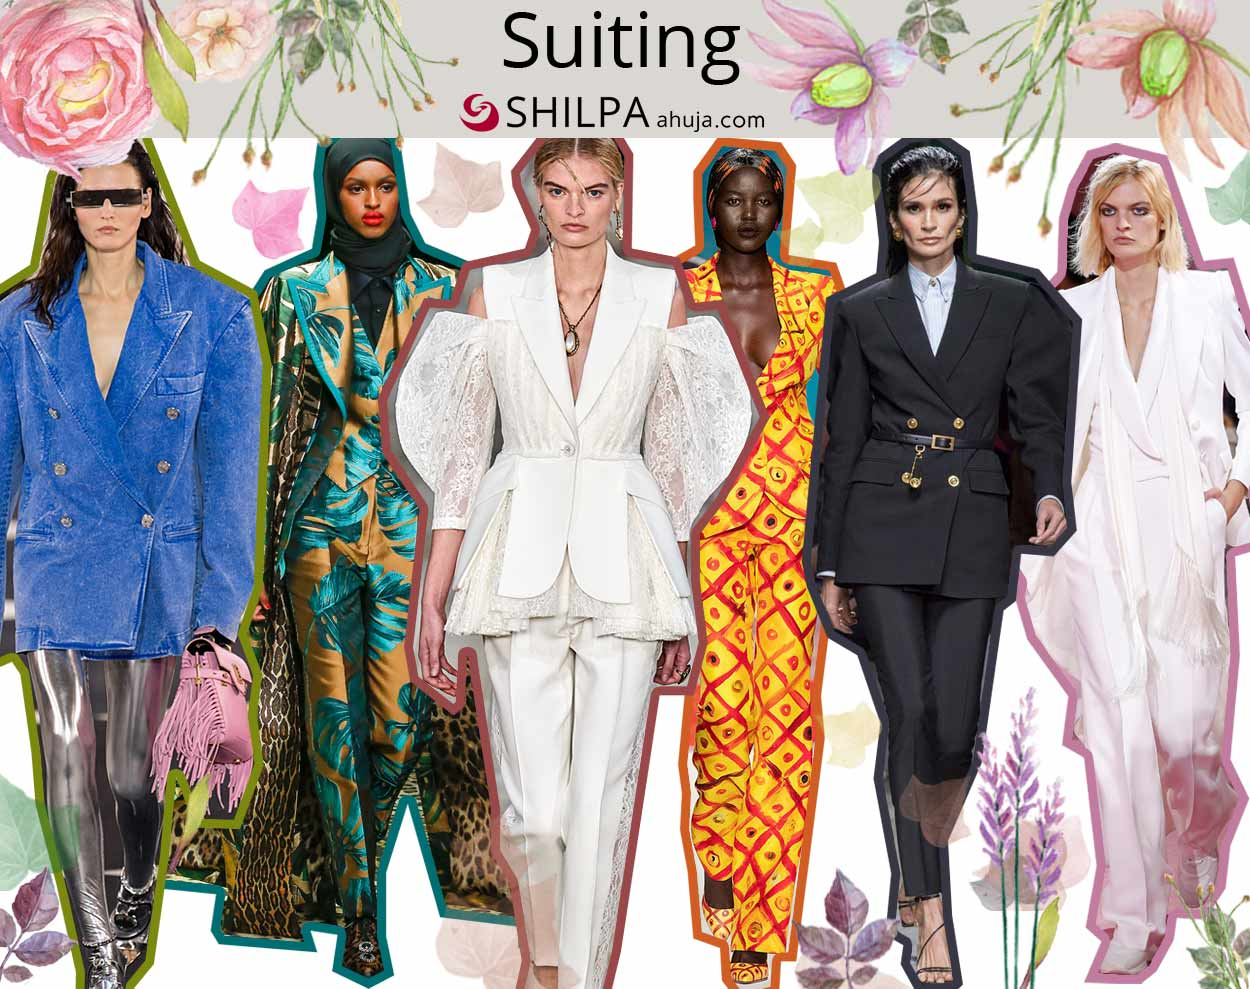 1 latest spring summer 2020 fashion trends vogue suiting